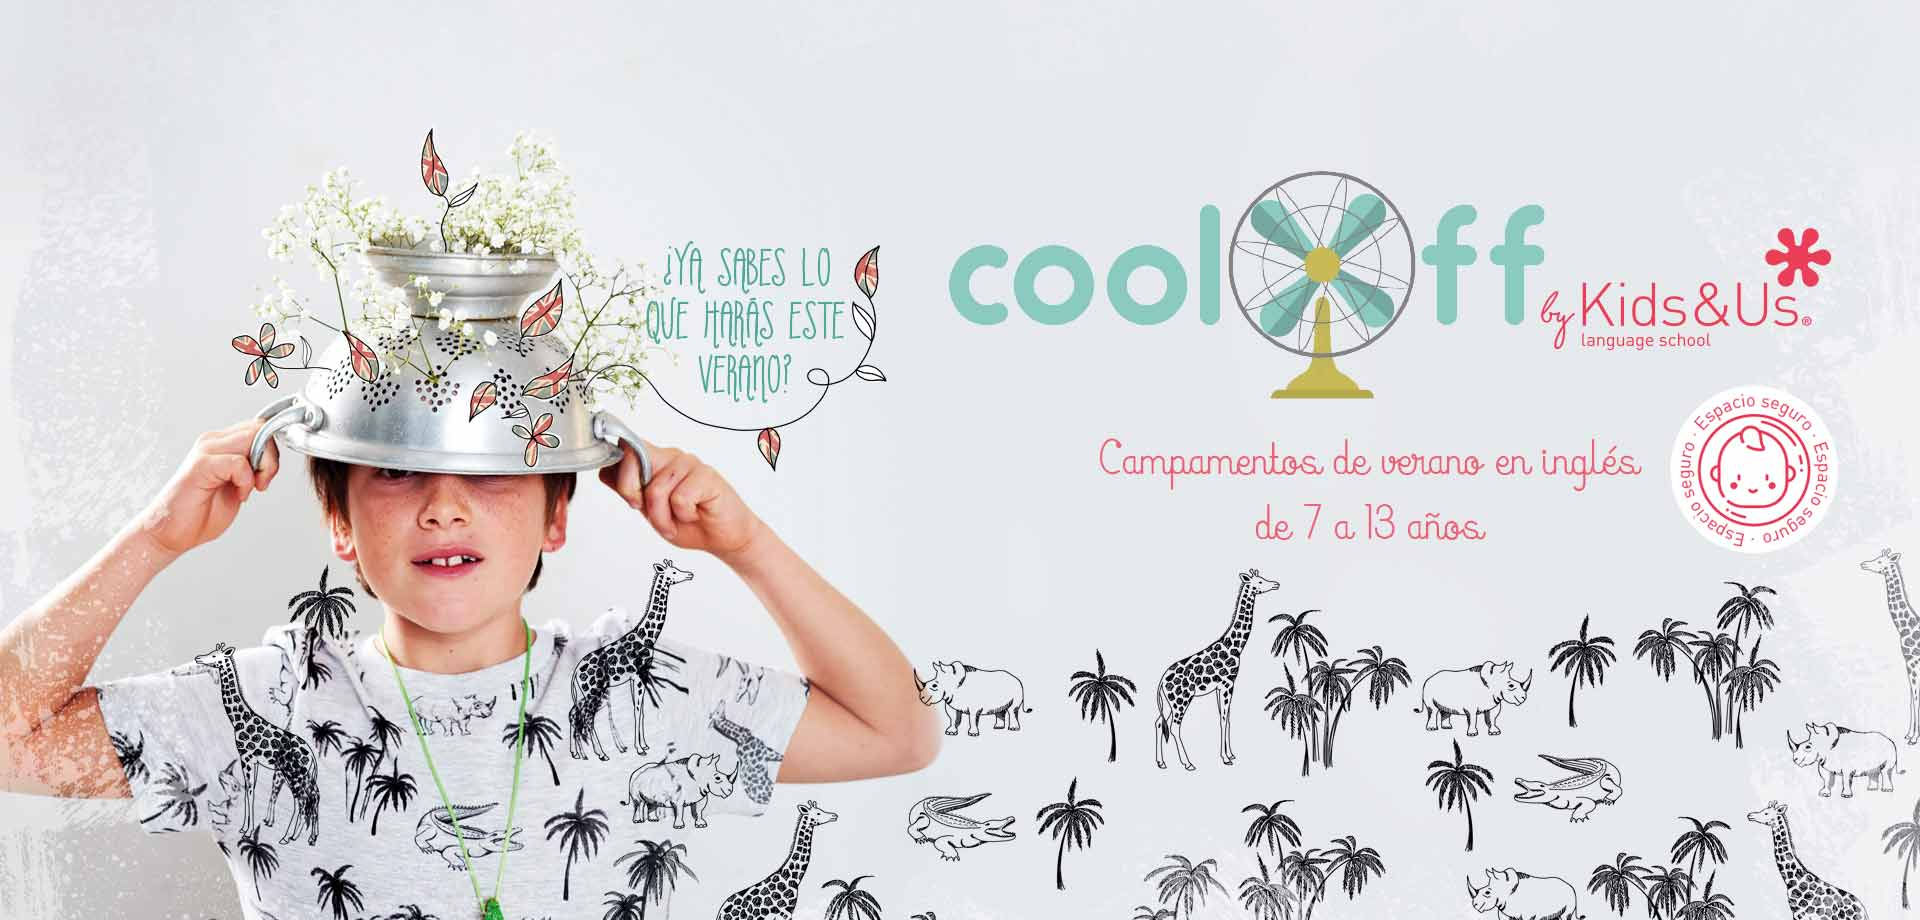 Conoce Cool Off de Kids&Us